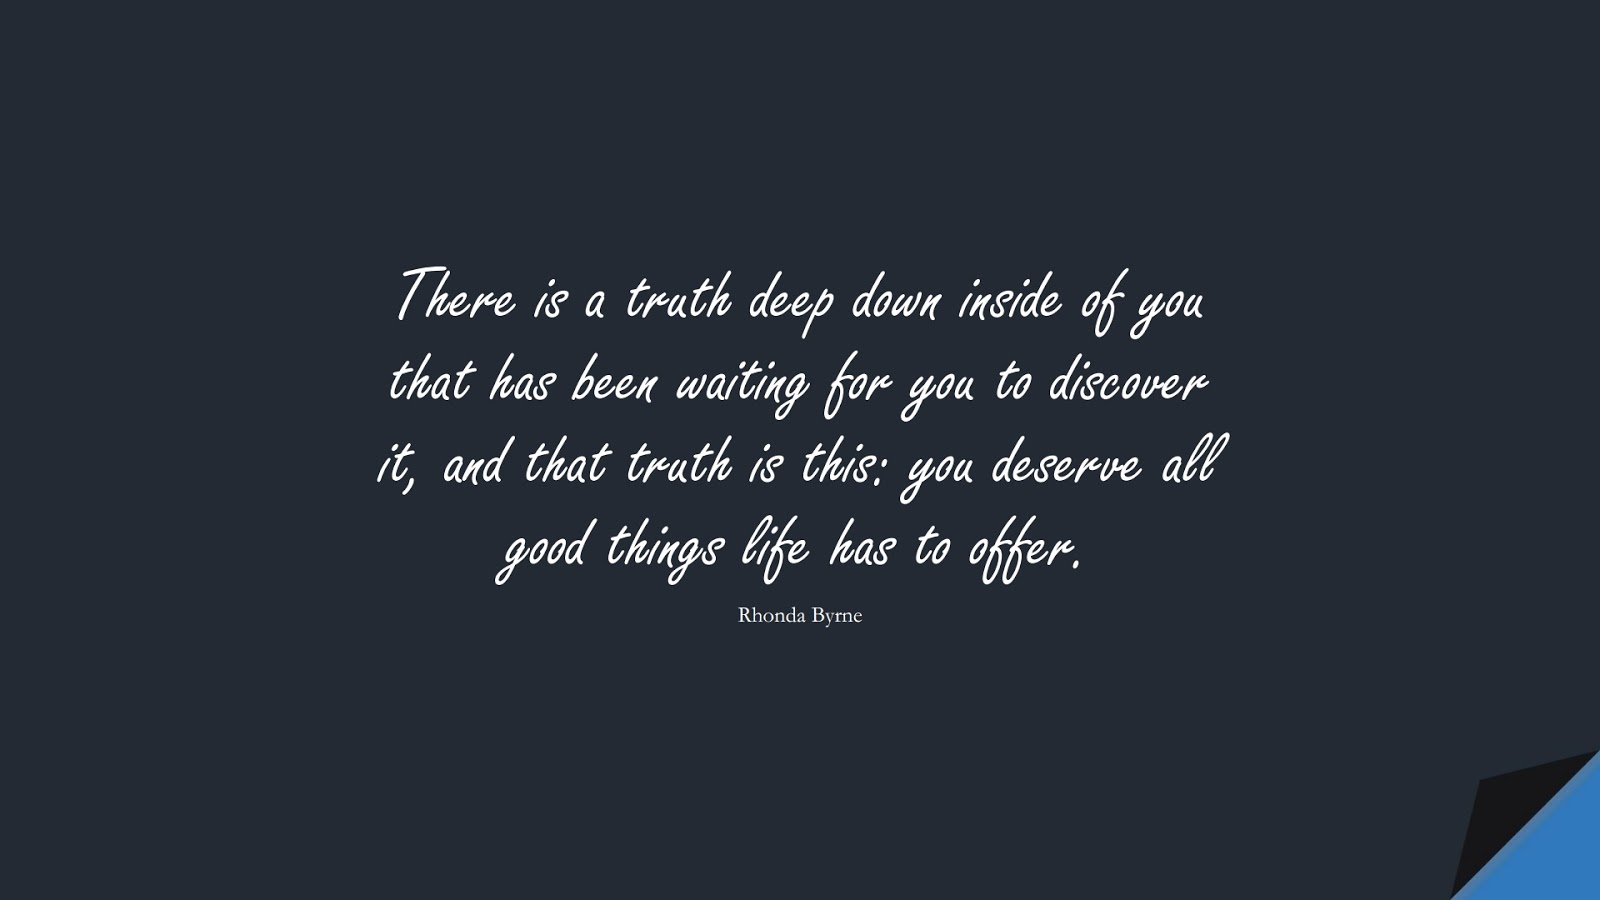 There is a truth deep down inside of you that has been waiting for you to discover it, and that truth is this: you deserve all good things life has to offer. (Rhonda Byrne);  #PositiveQuotes